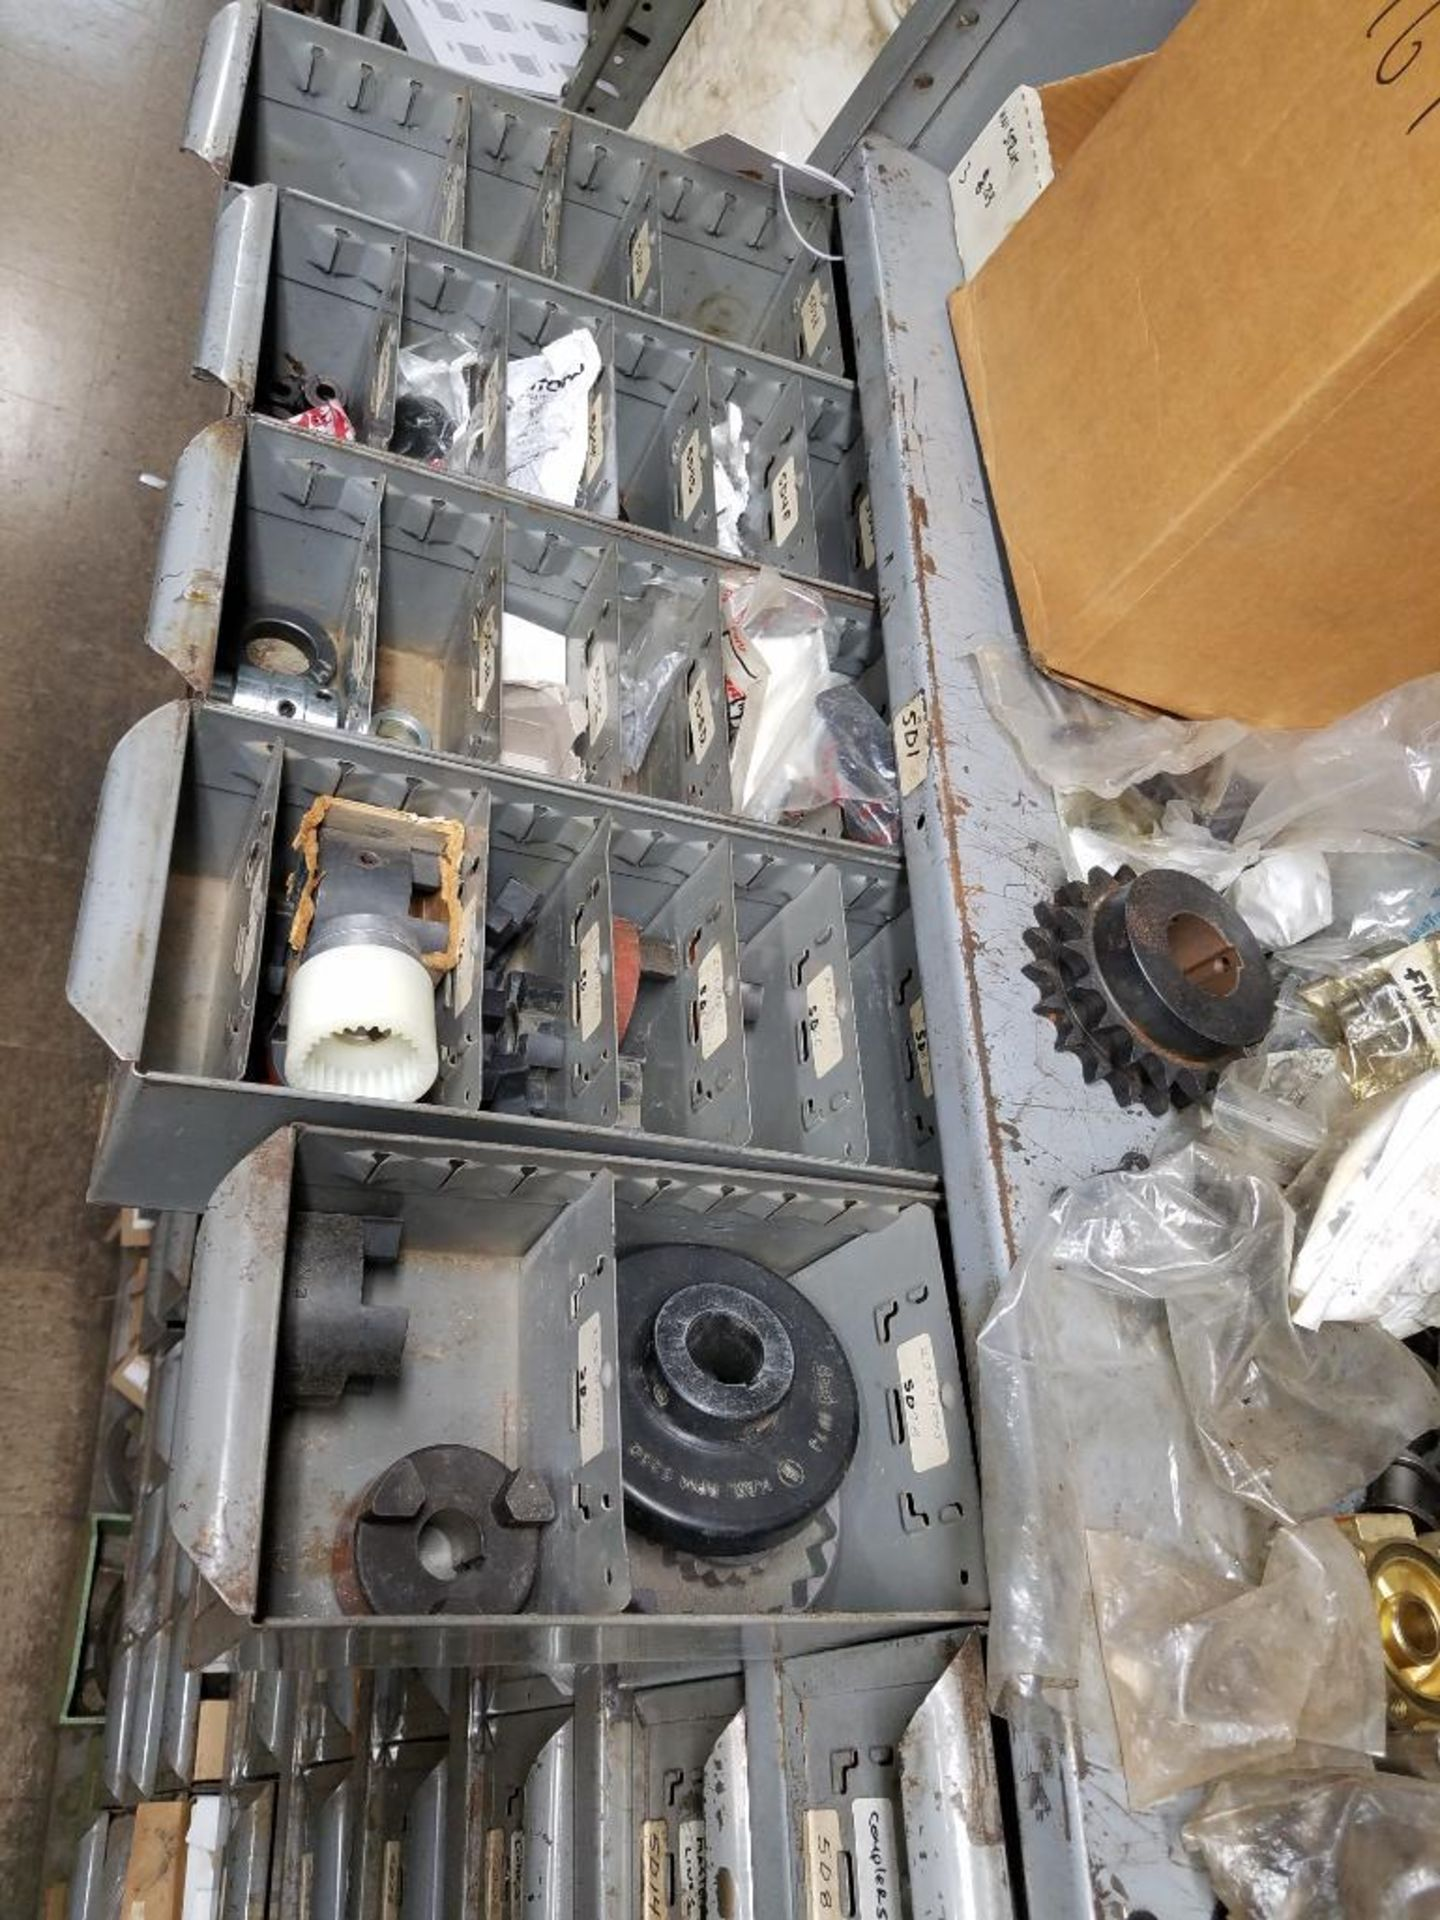 bushings, sheaves, links, chain, couplers, sprockets, and pulleys - Image 23 of 24